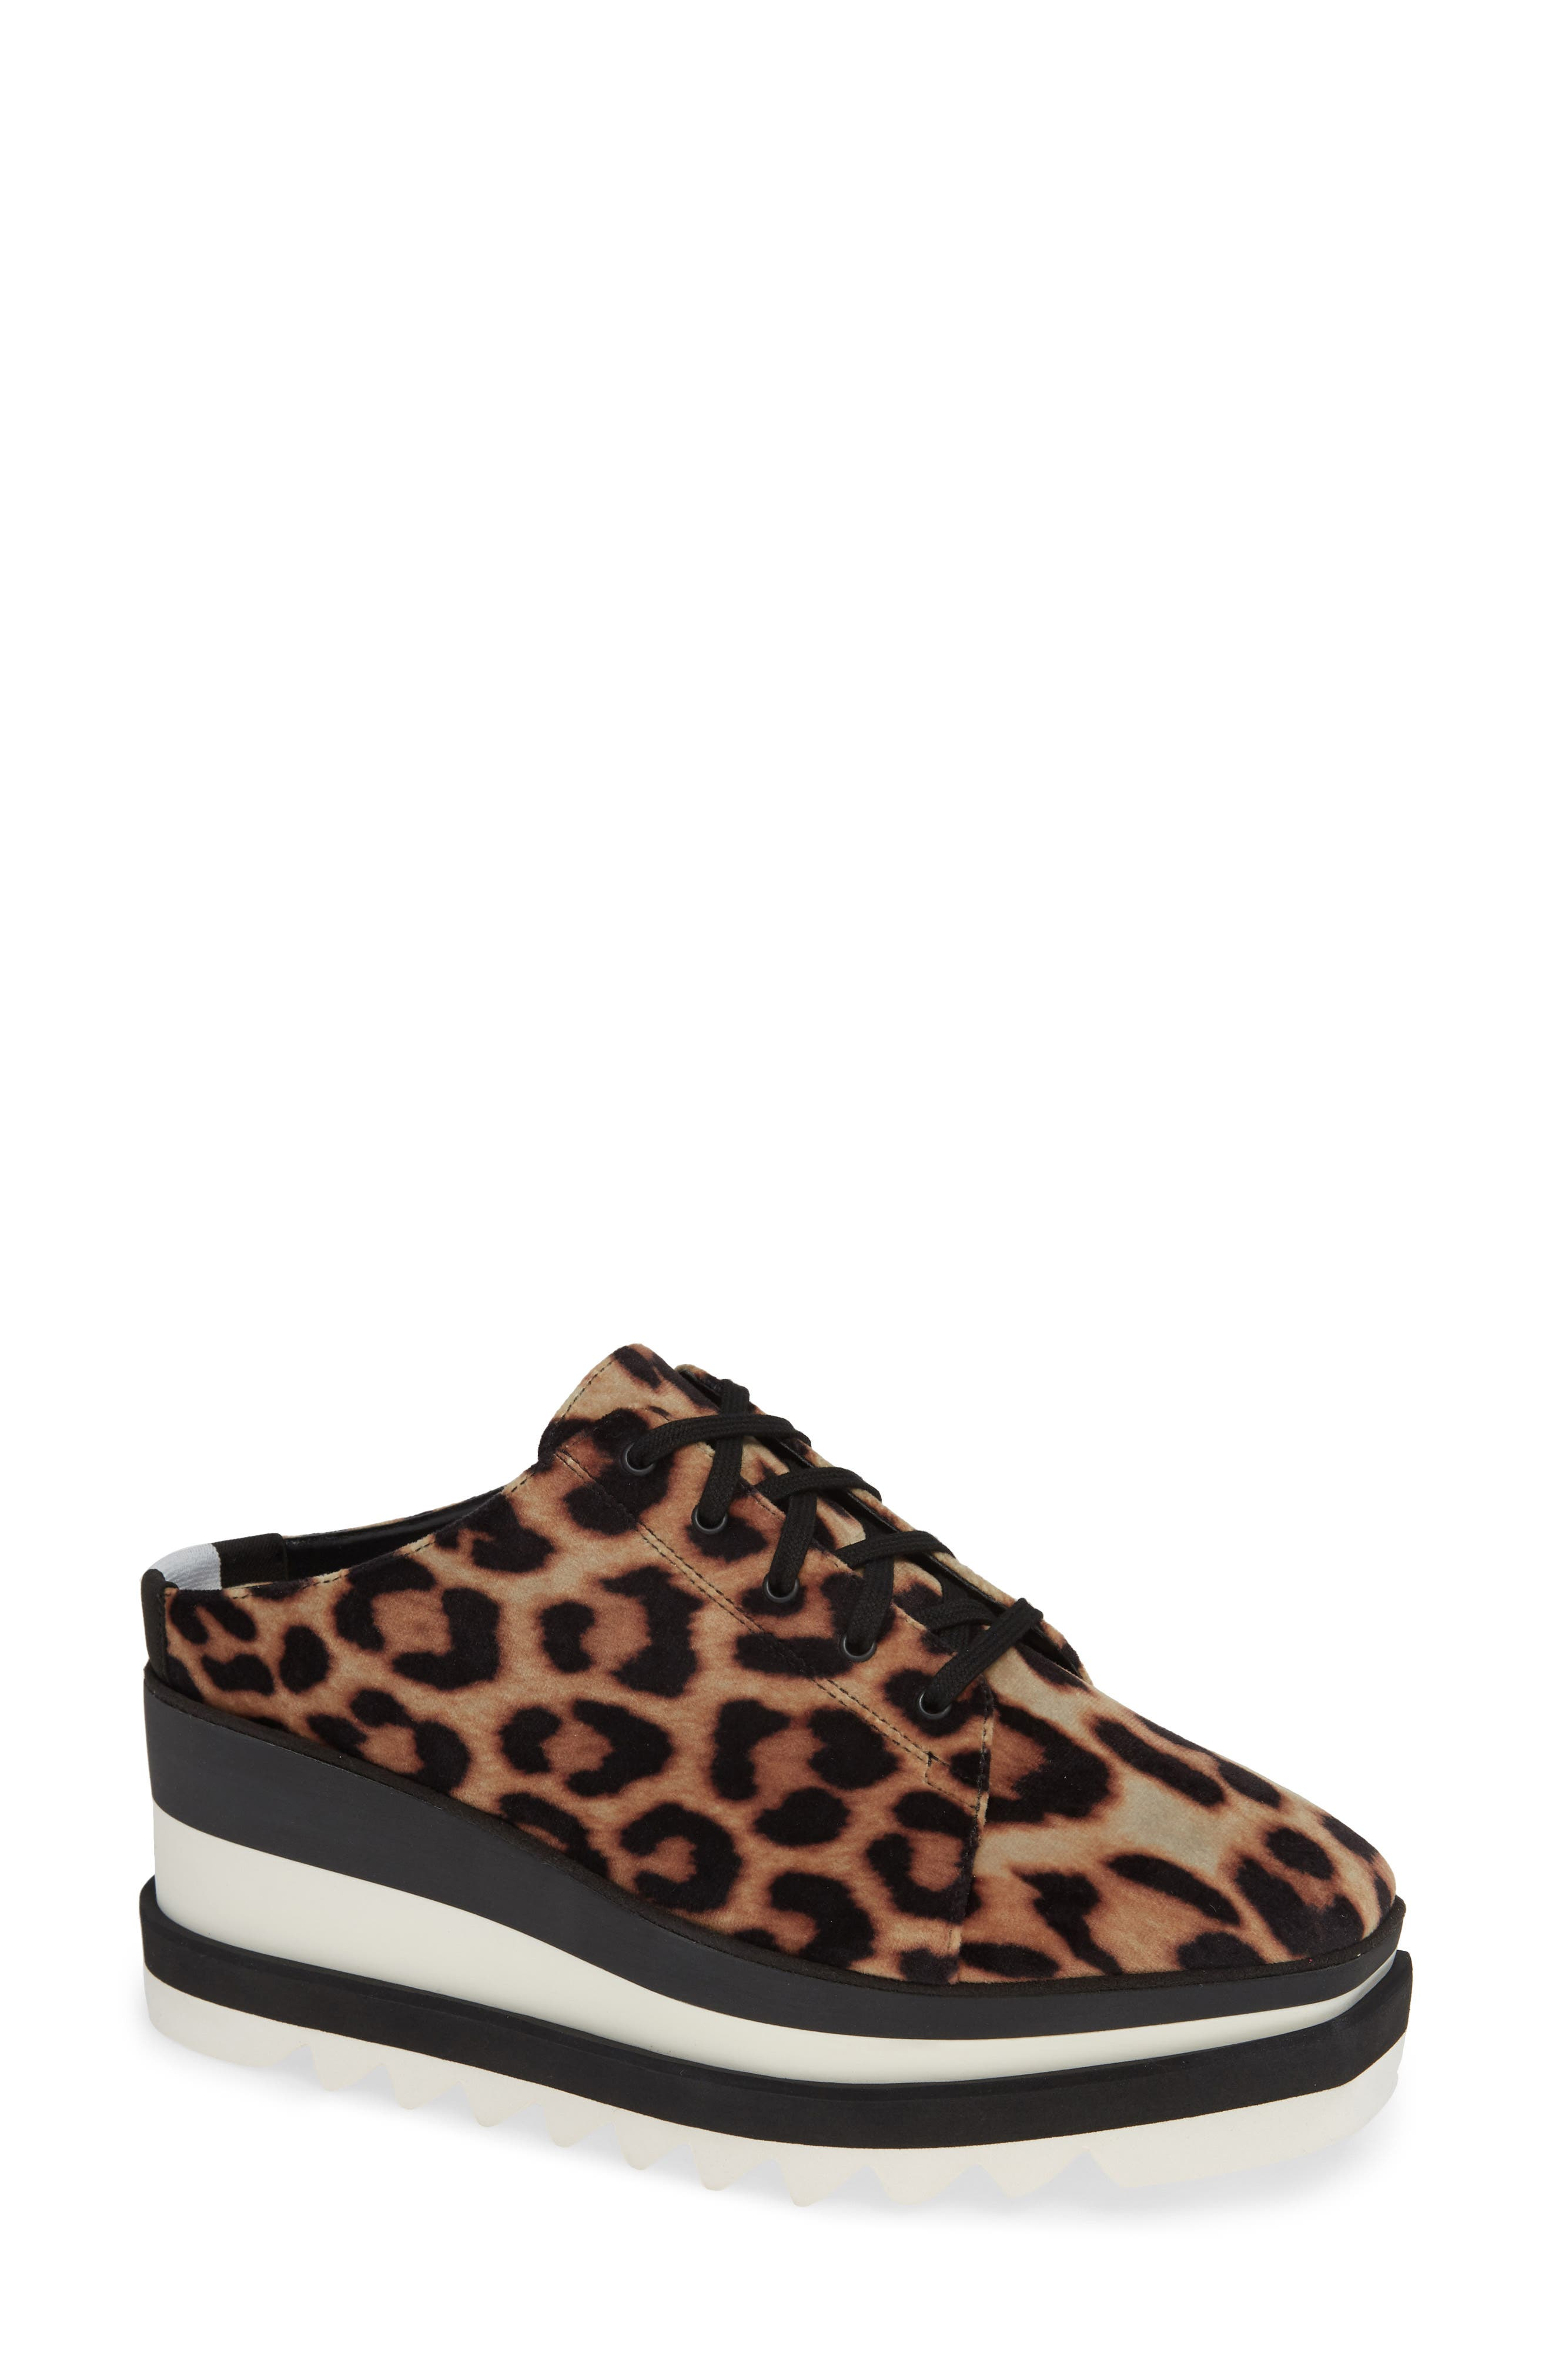 Sneak-Elyse Platform Mule,                             Main thumbnail 1, color,                             LEOPARD PRINT